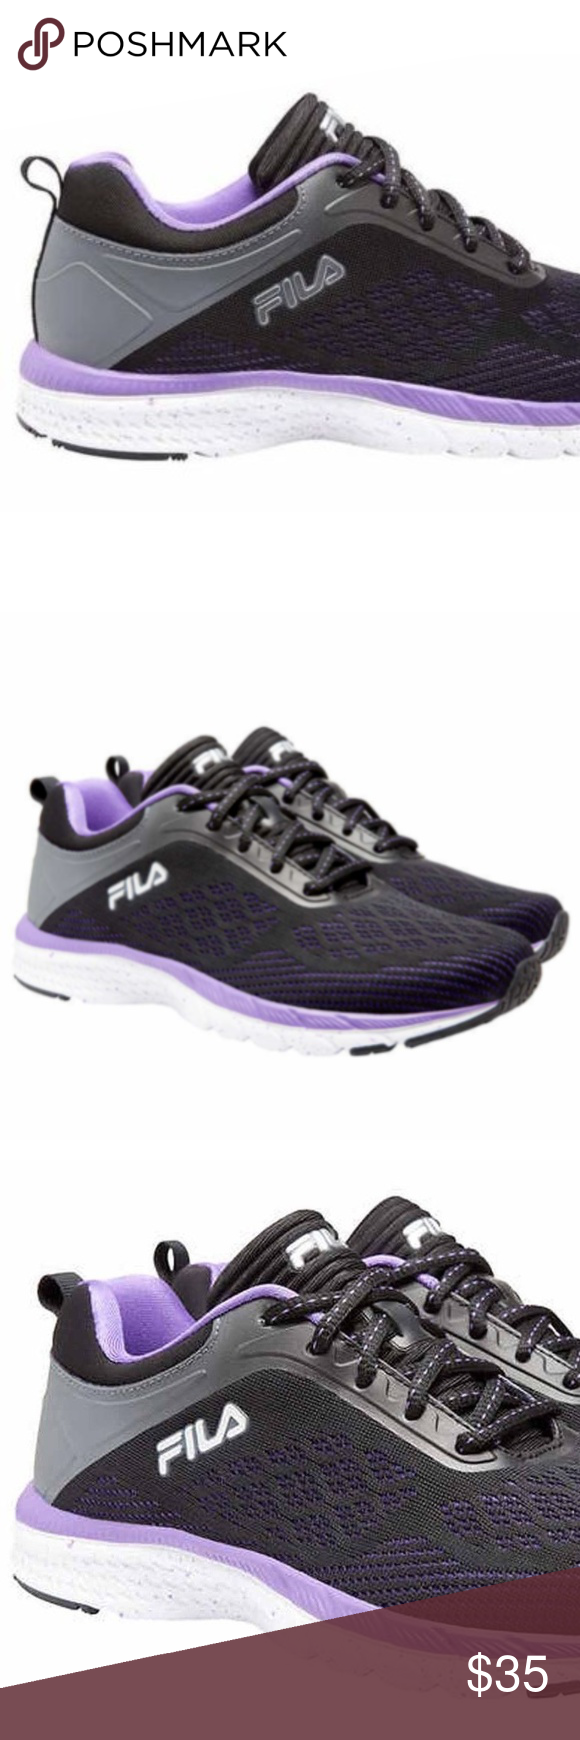 FILA Womens Memory Foam Outreach Athletic Shoe This is for a